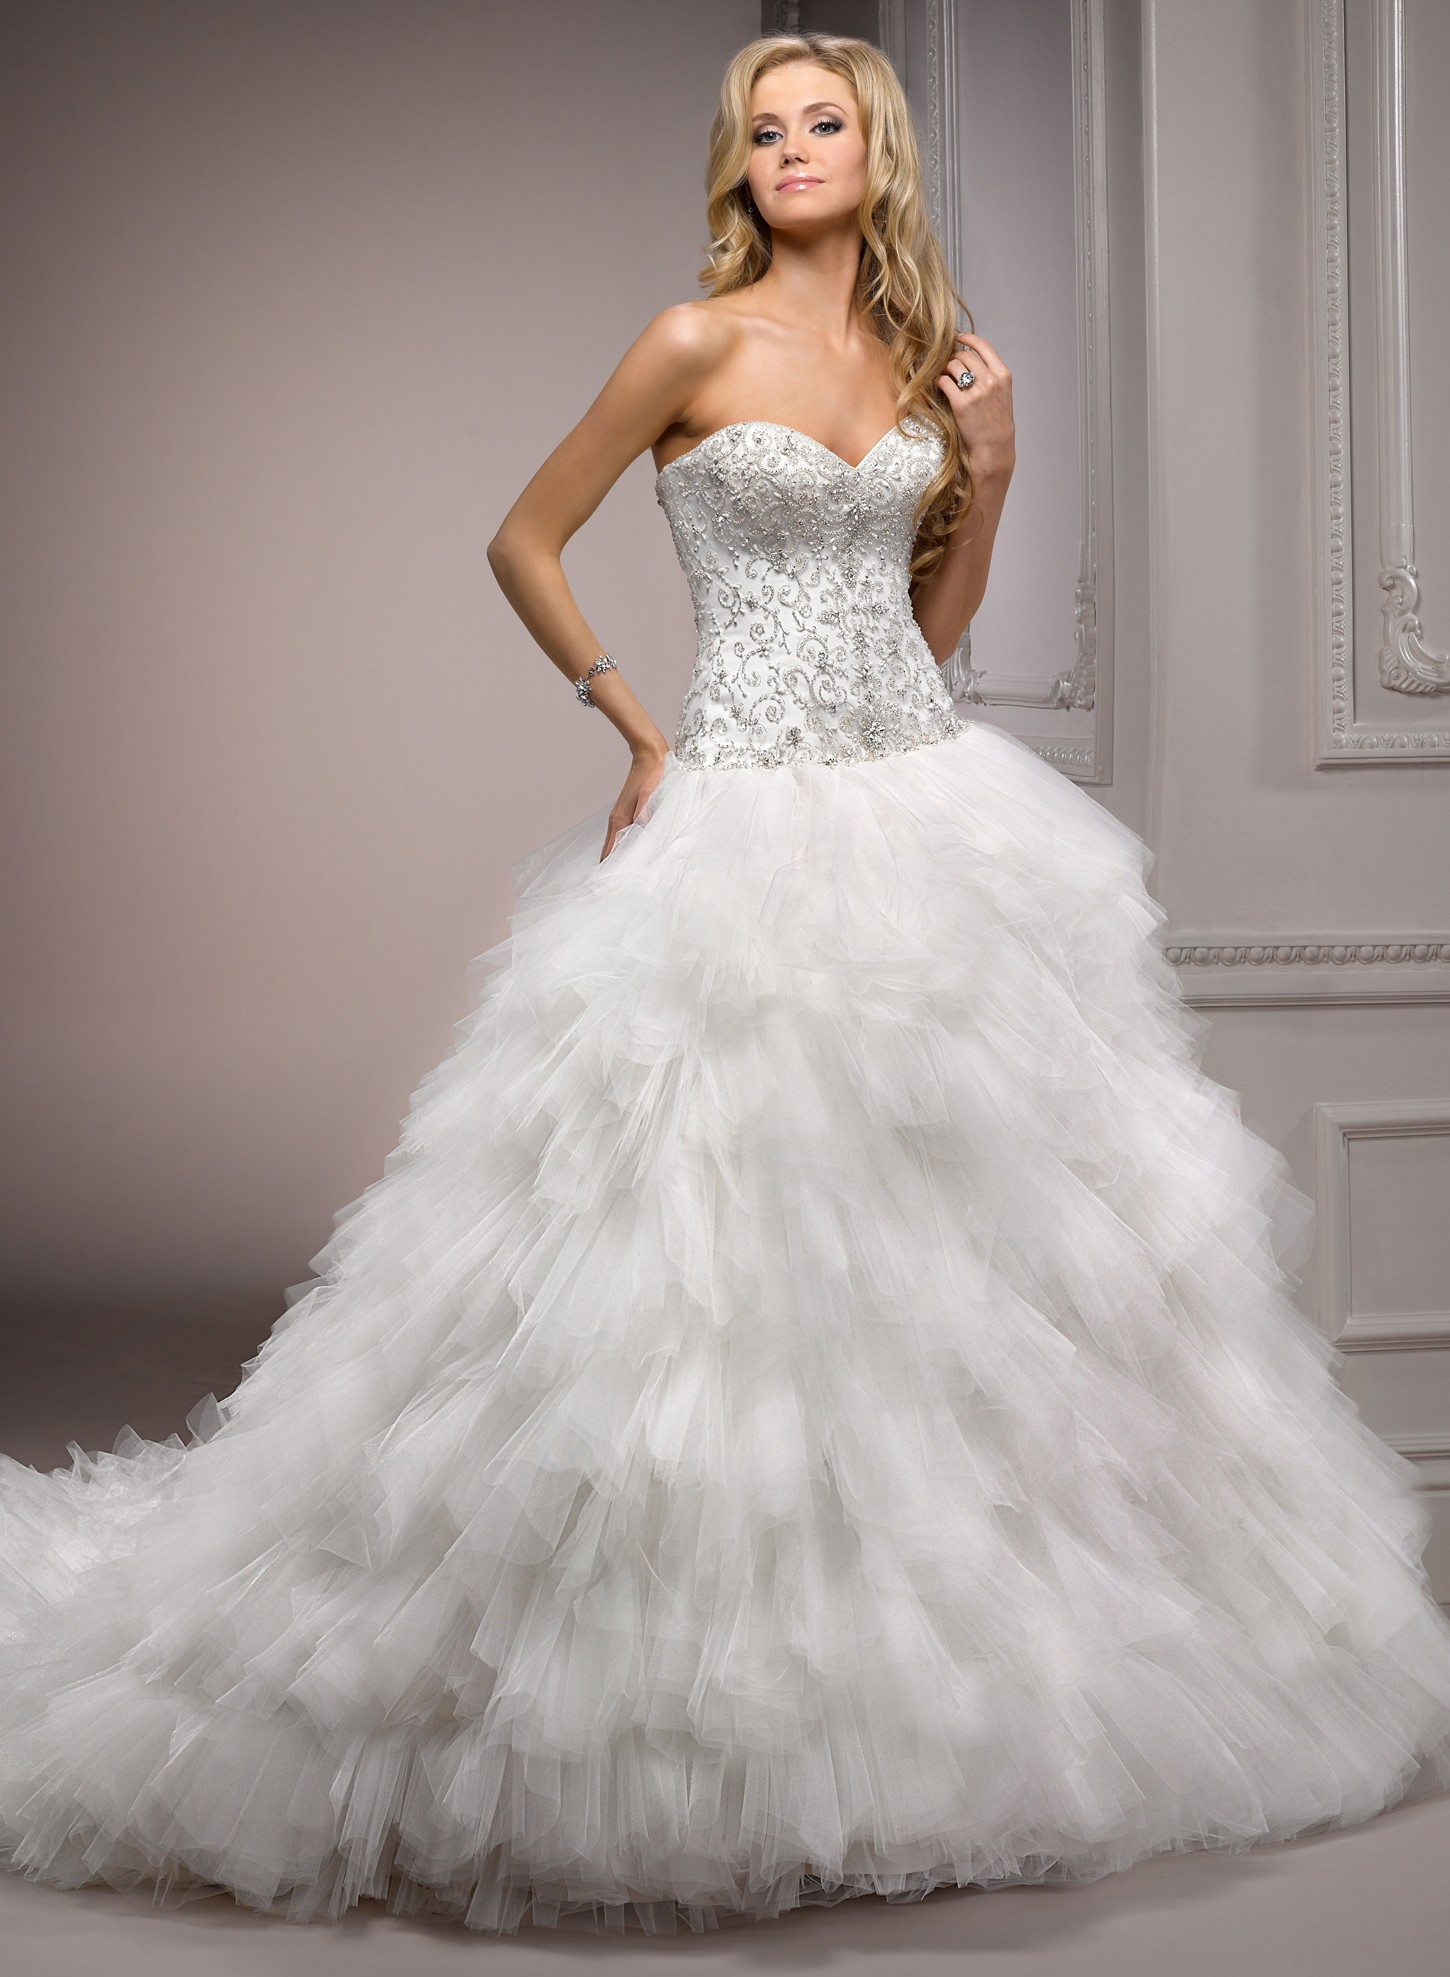 16 best ball gown wedding dresses ideas big poofy wedding dresses Very luxury ball gown